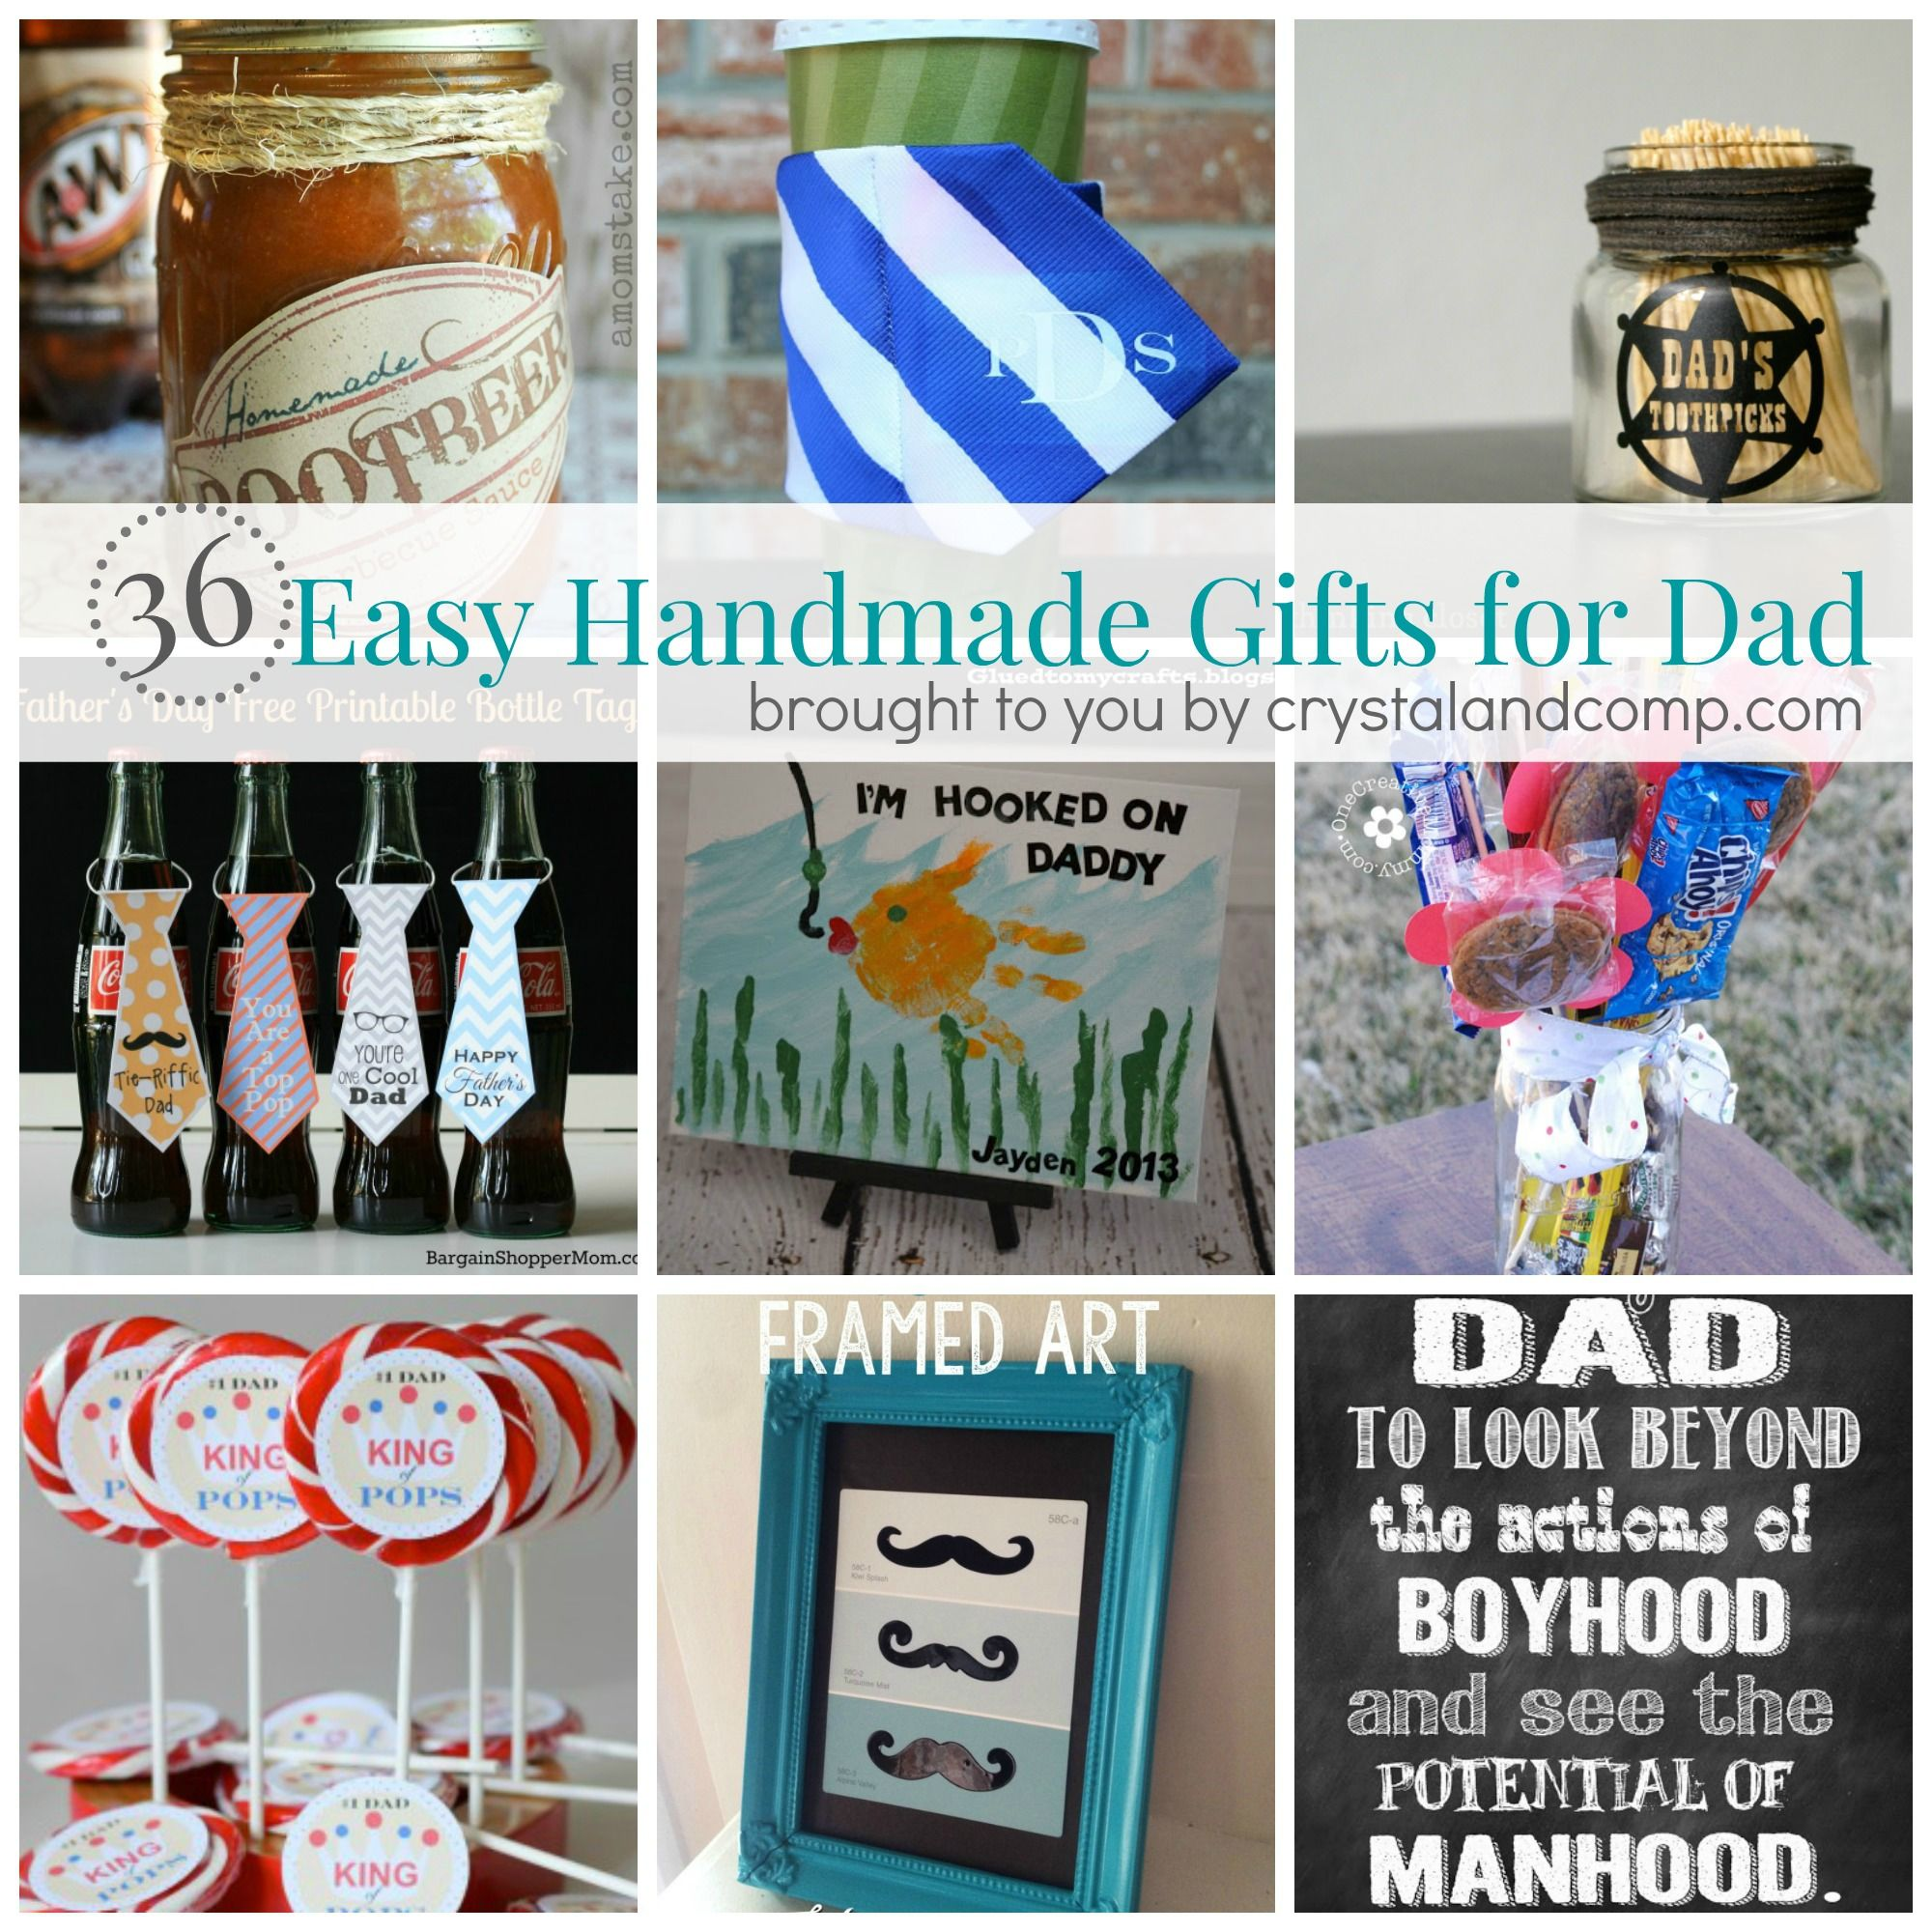 36 Easy Handmade Gift Ideas for Dad Easy homemade gifts